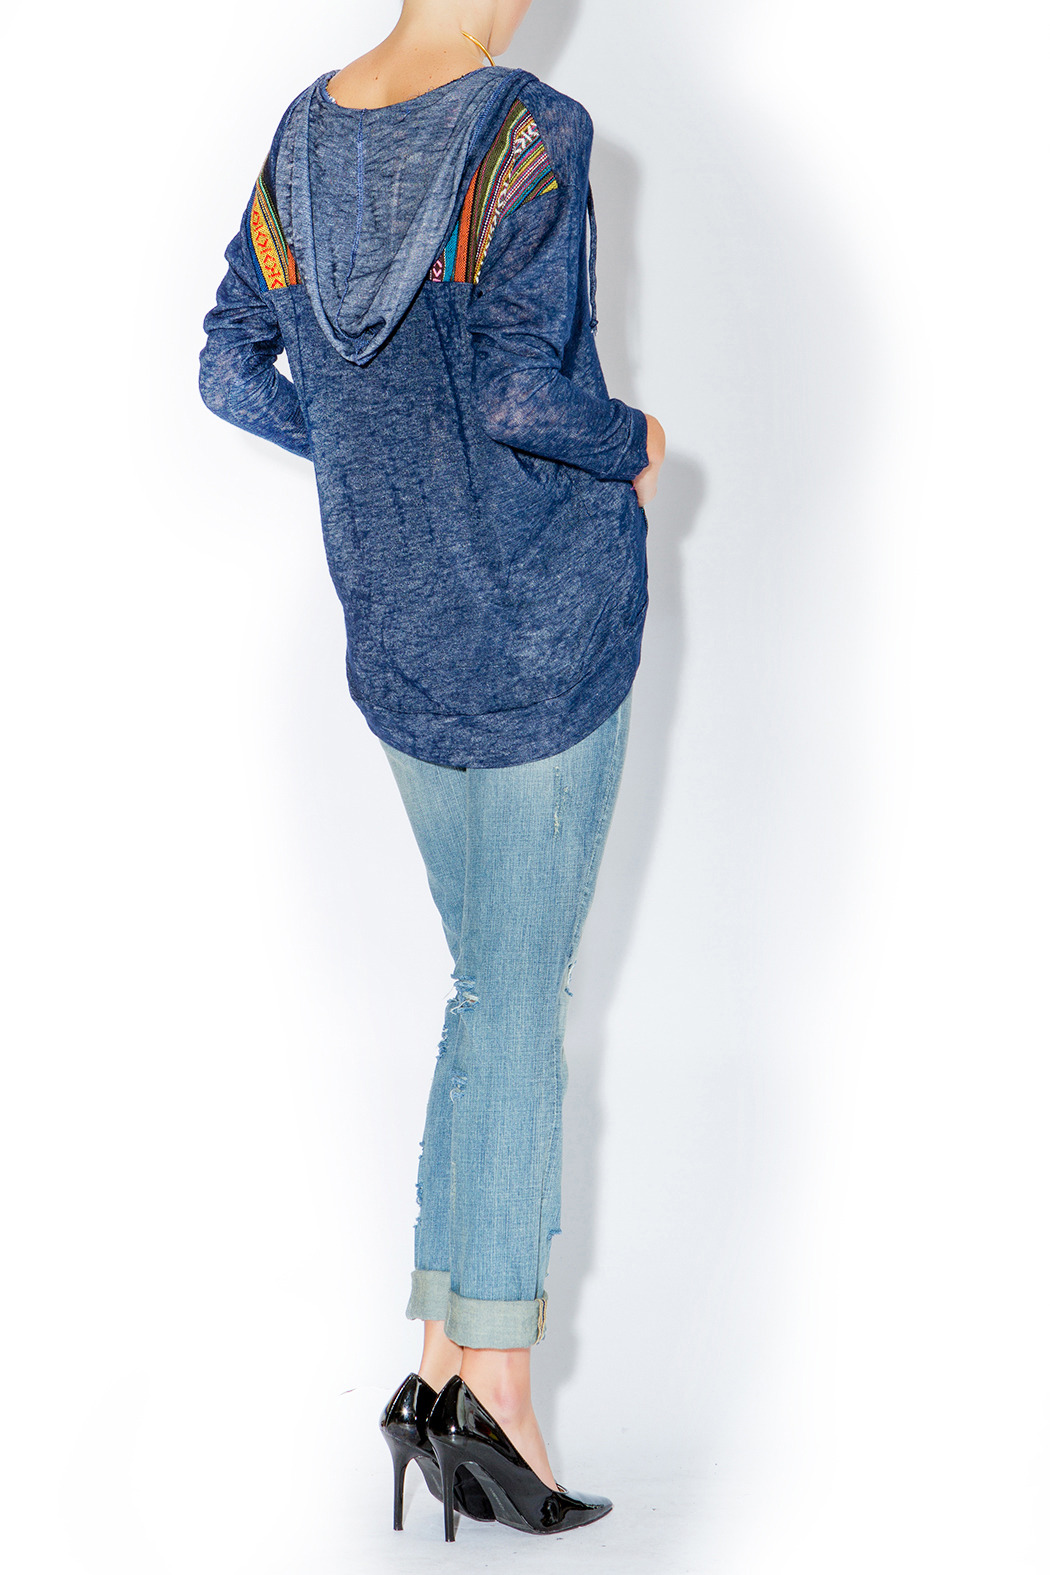 This is a heavy denim coat with hoodie attached to it. It is heavy enough to be worn as a winter coat. Very comfortable and in very good condition. Men's Casual Denim Fashion Hoodies Jean Hooded Sweatshirts Coat Jacket Outwear. $ Buy It Now. Free .